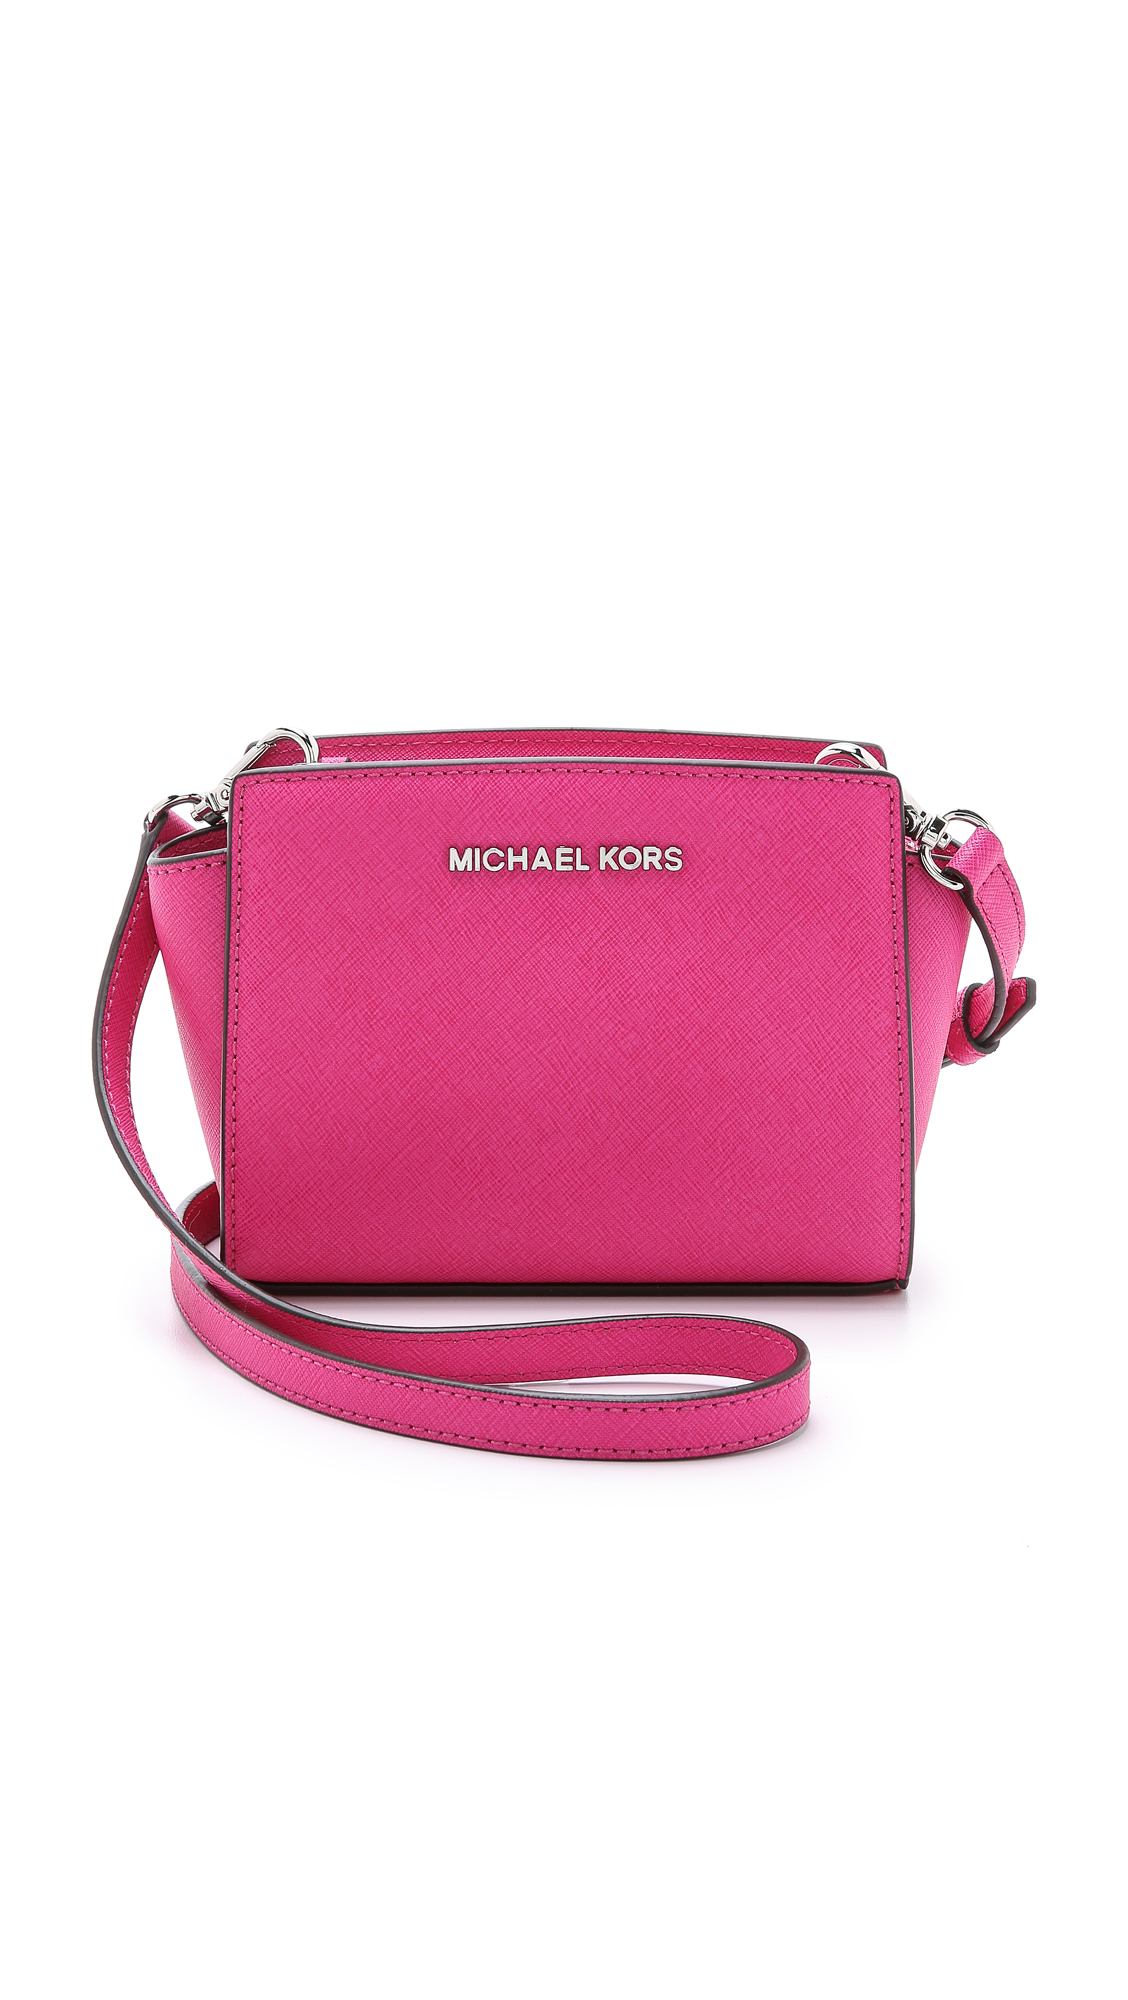 452b59c574140e Gallery. Previously sold at: Shopbop · Women's Michael By Michael Kors Selma